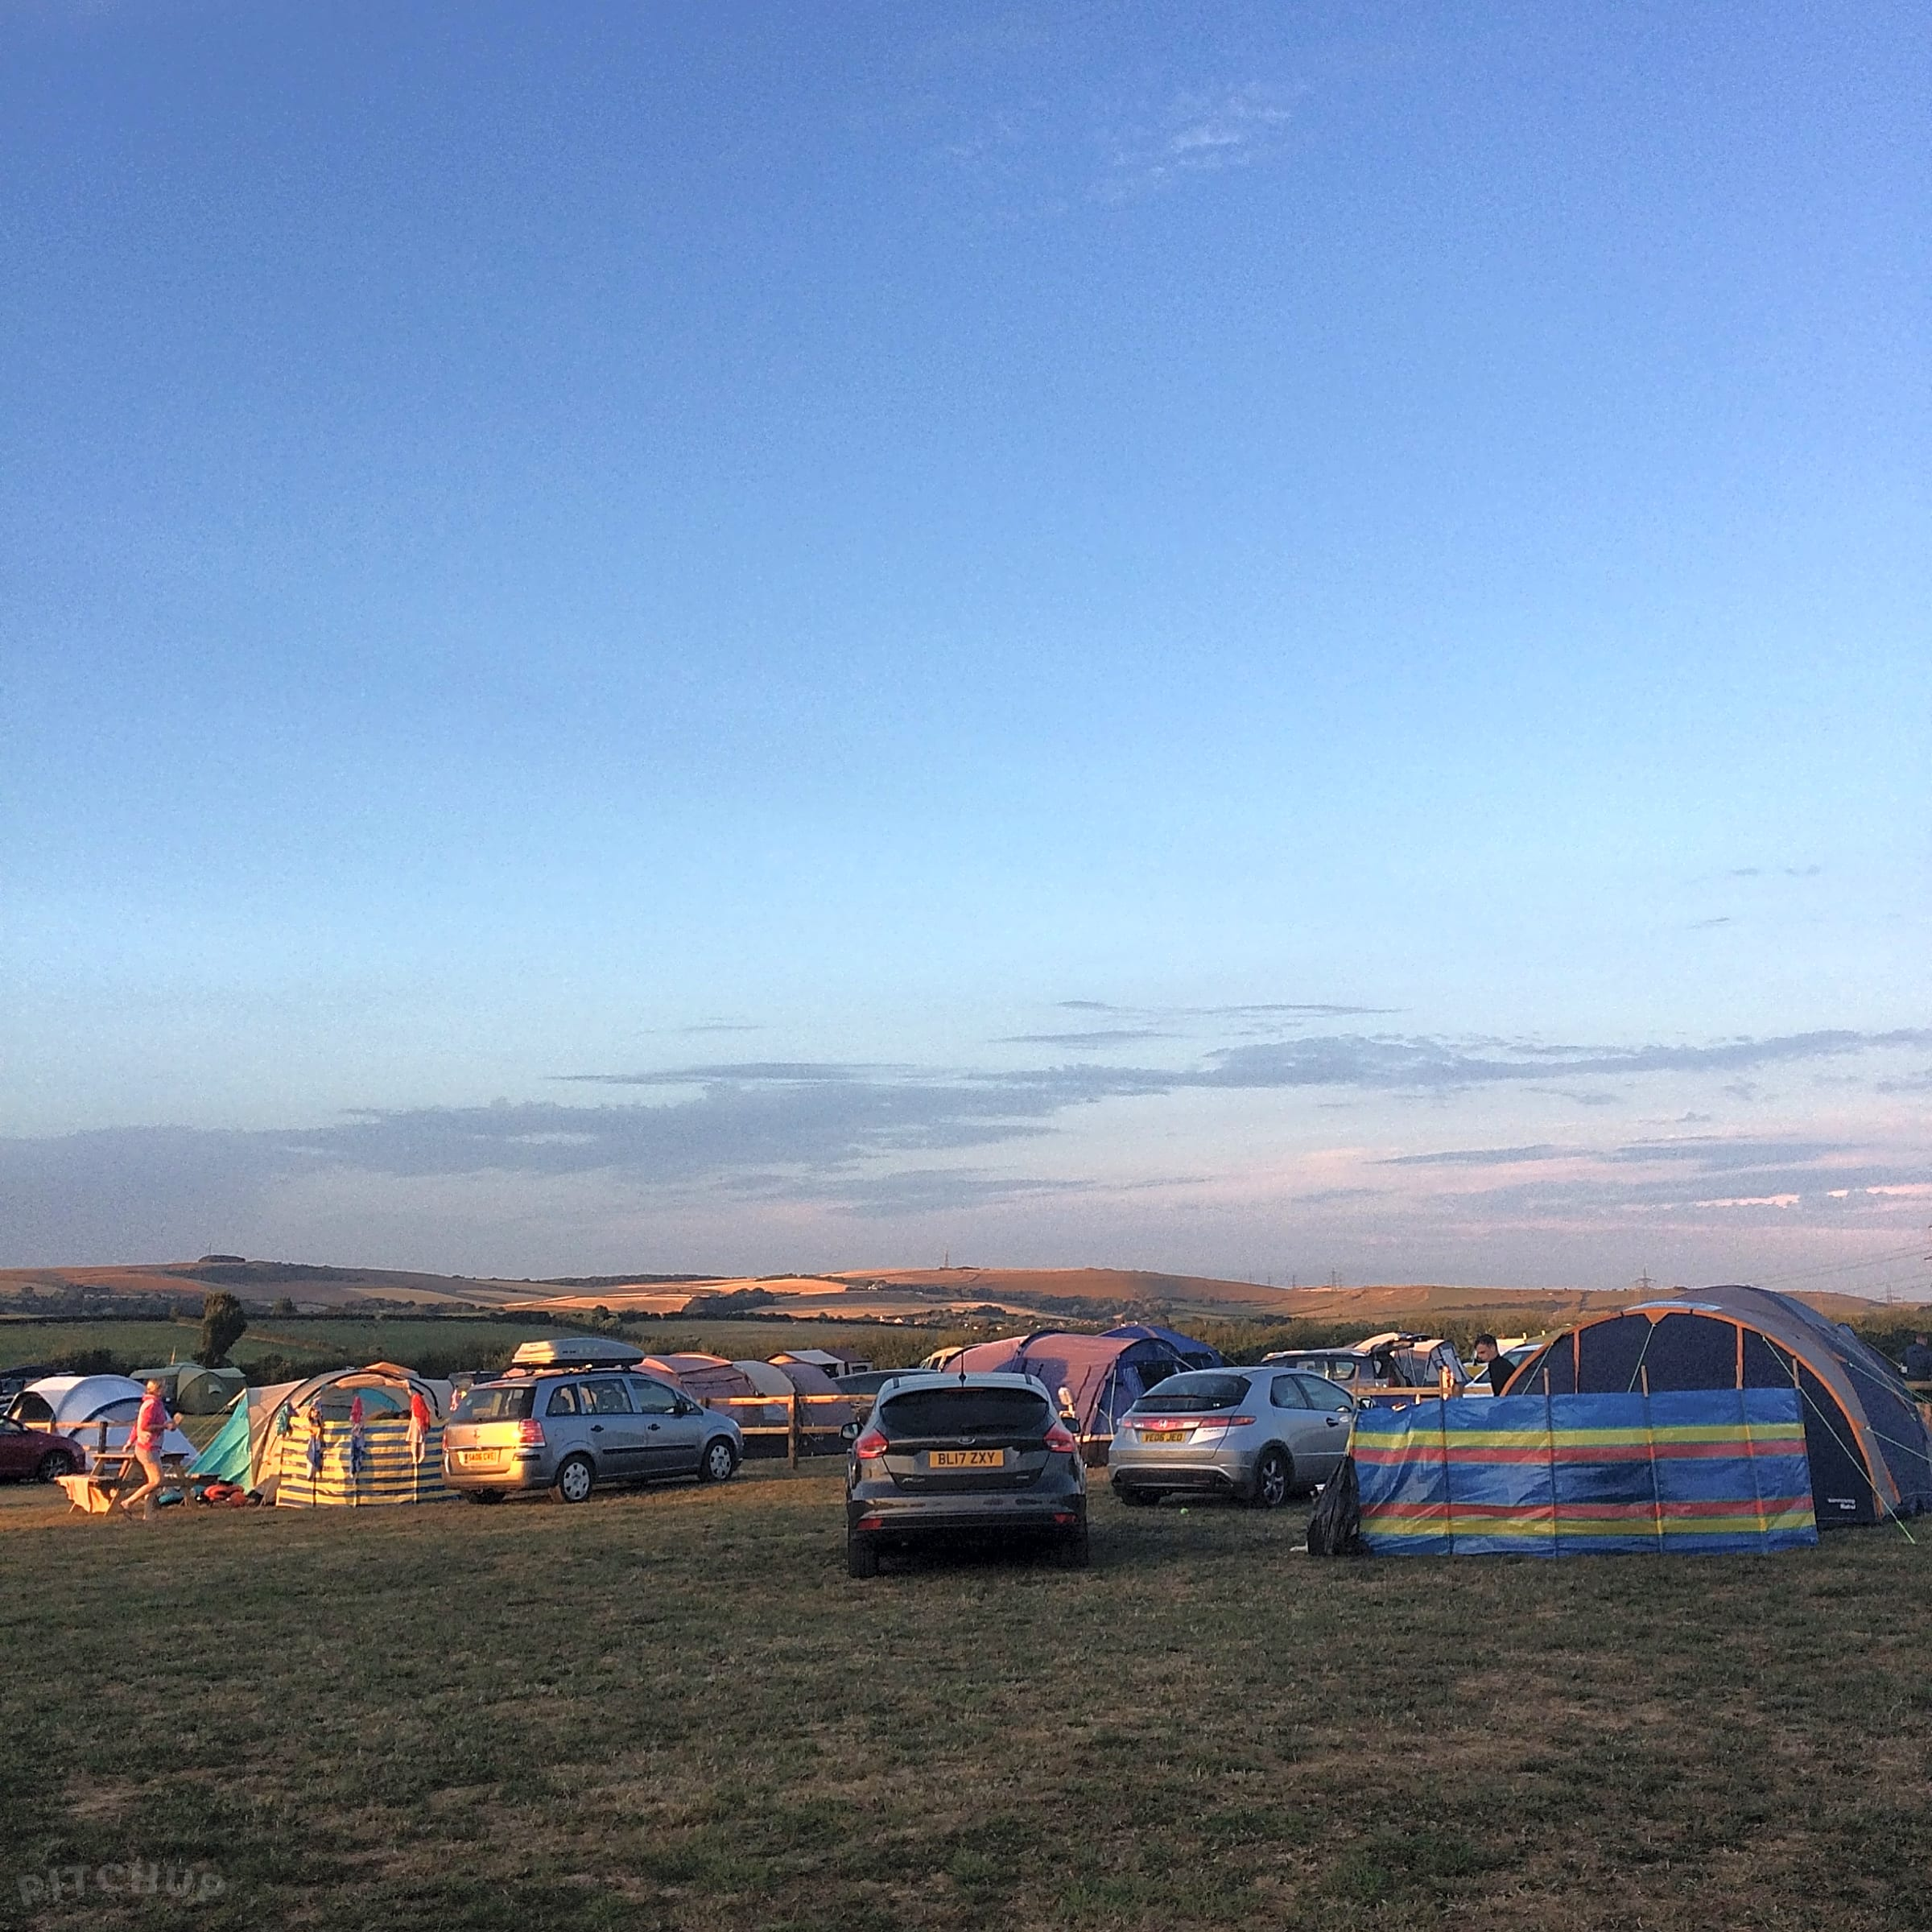 Buckland campsite weymouth updated 2019 prices pitchup - Weymouth campsites with swimming pool ...